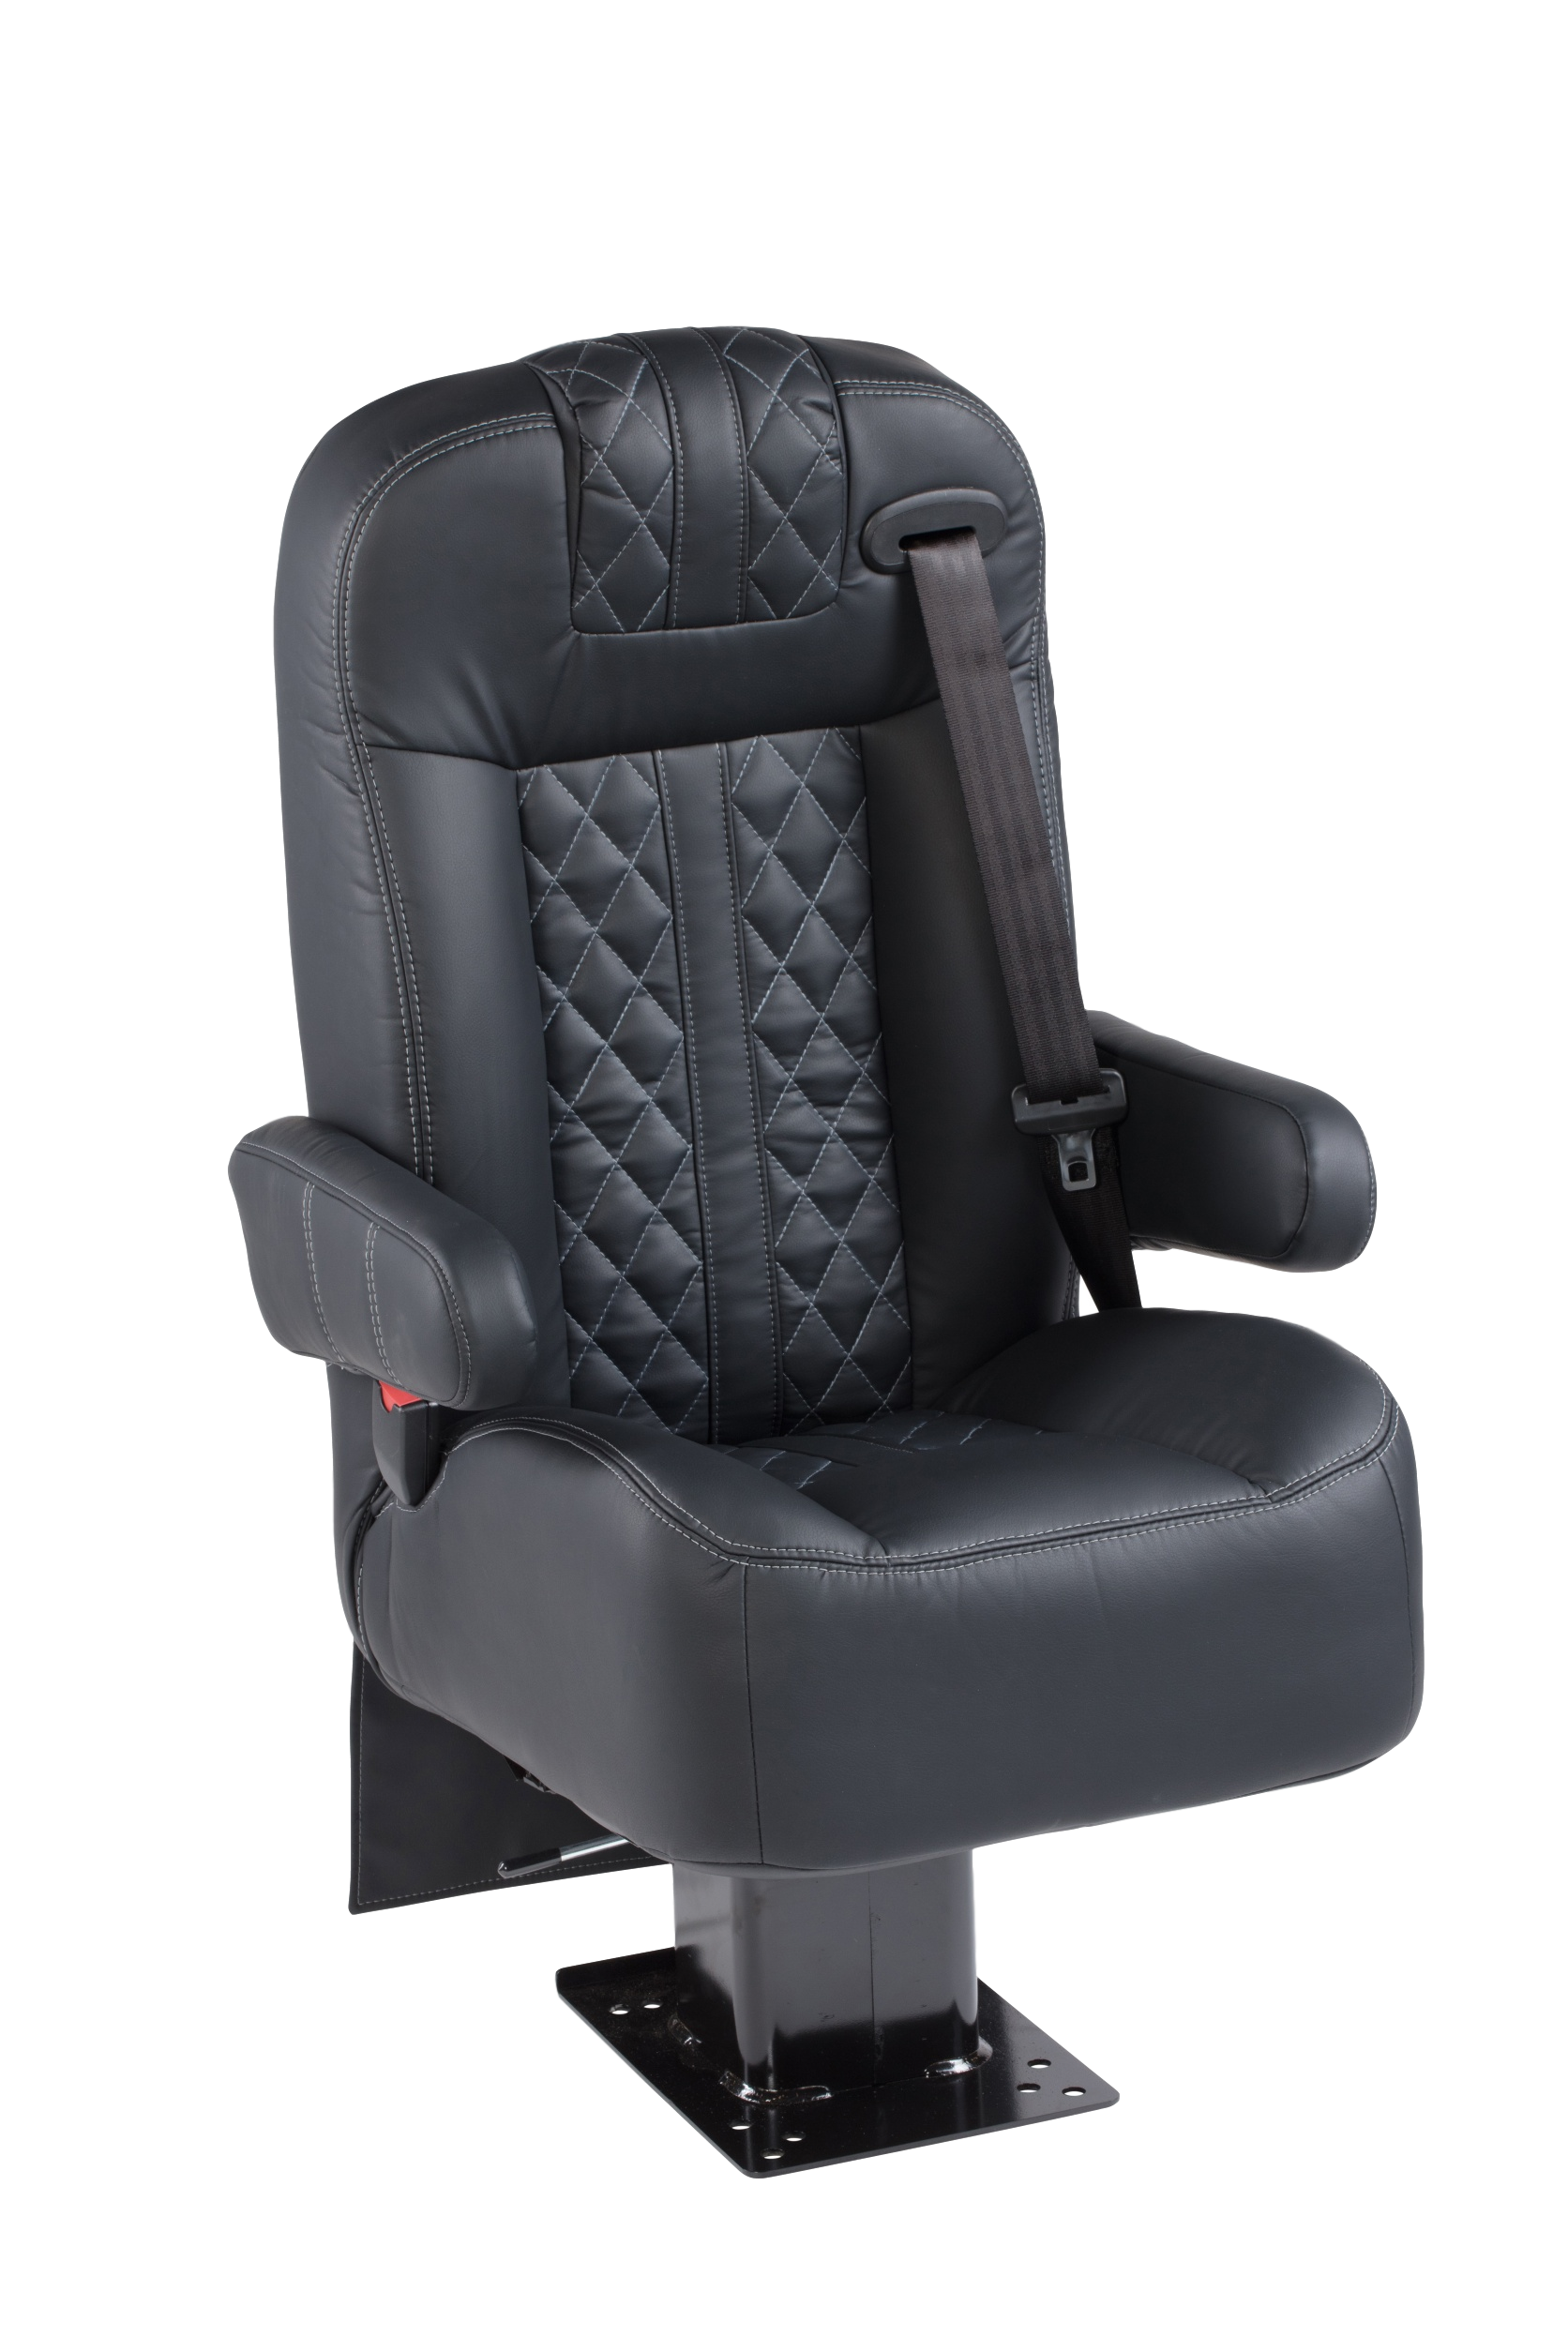 Galaxy Full Size Luxury Seat